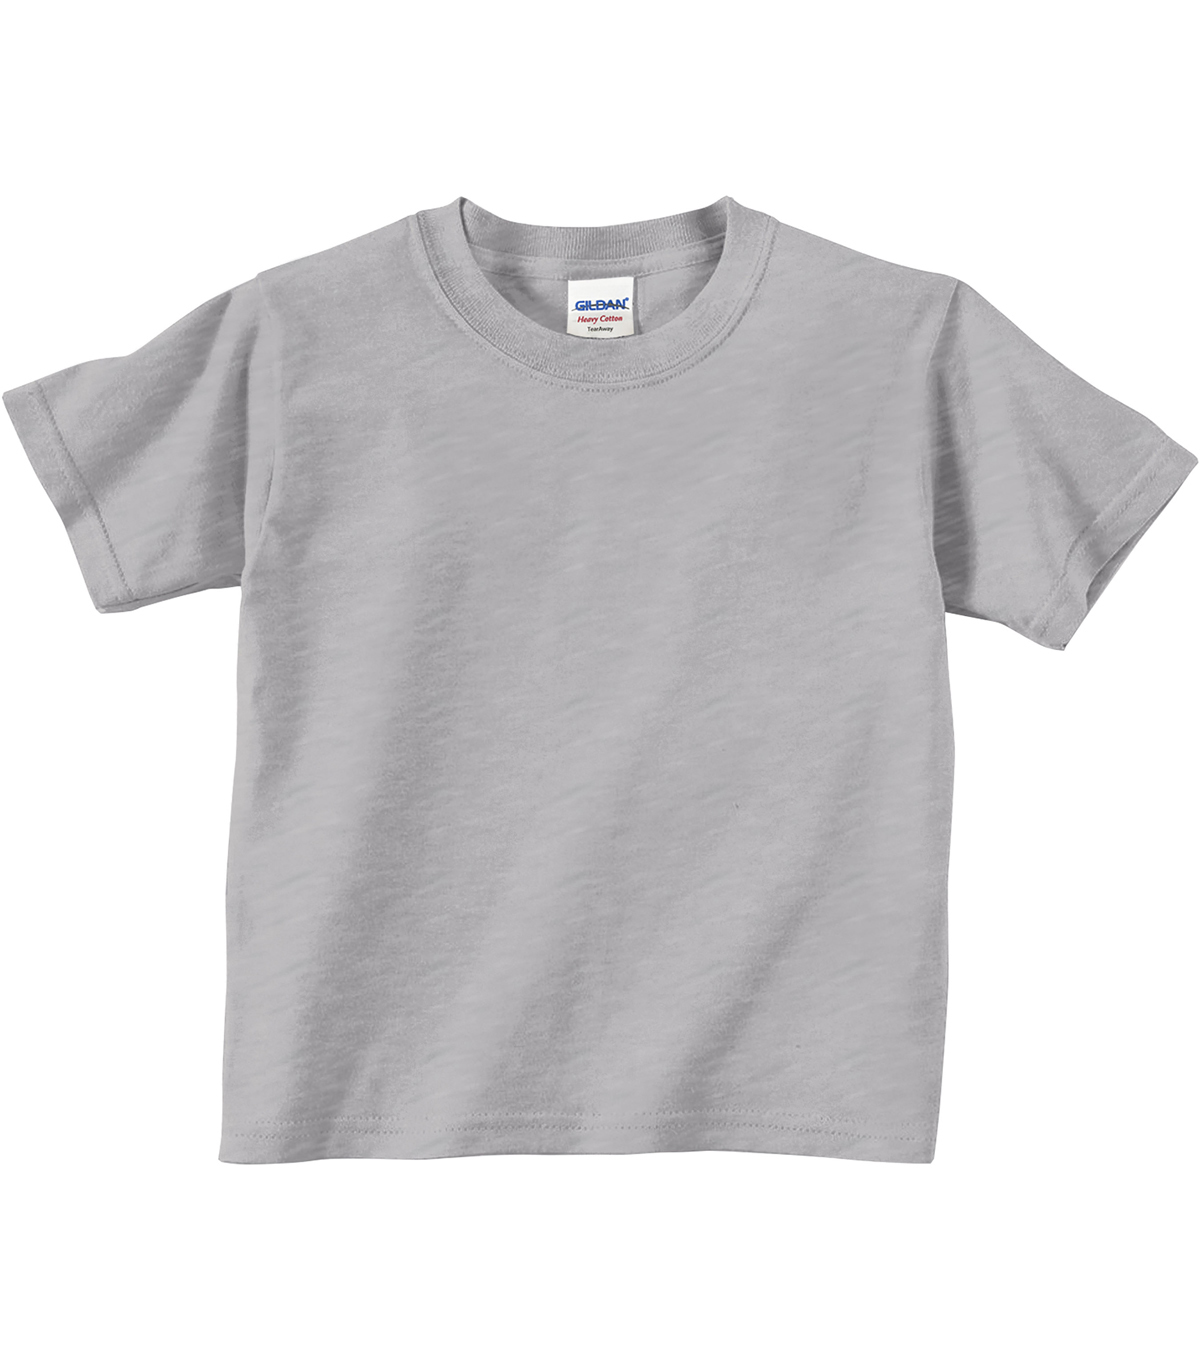 Gildan Toddler T-Shirt 3T